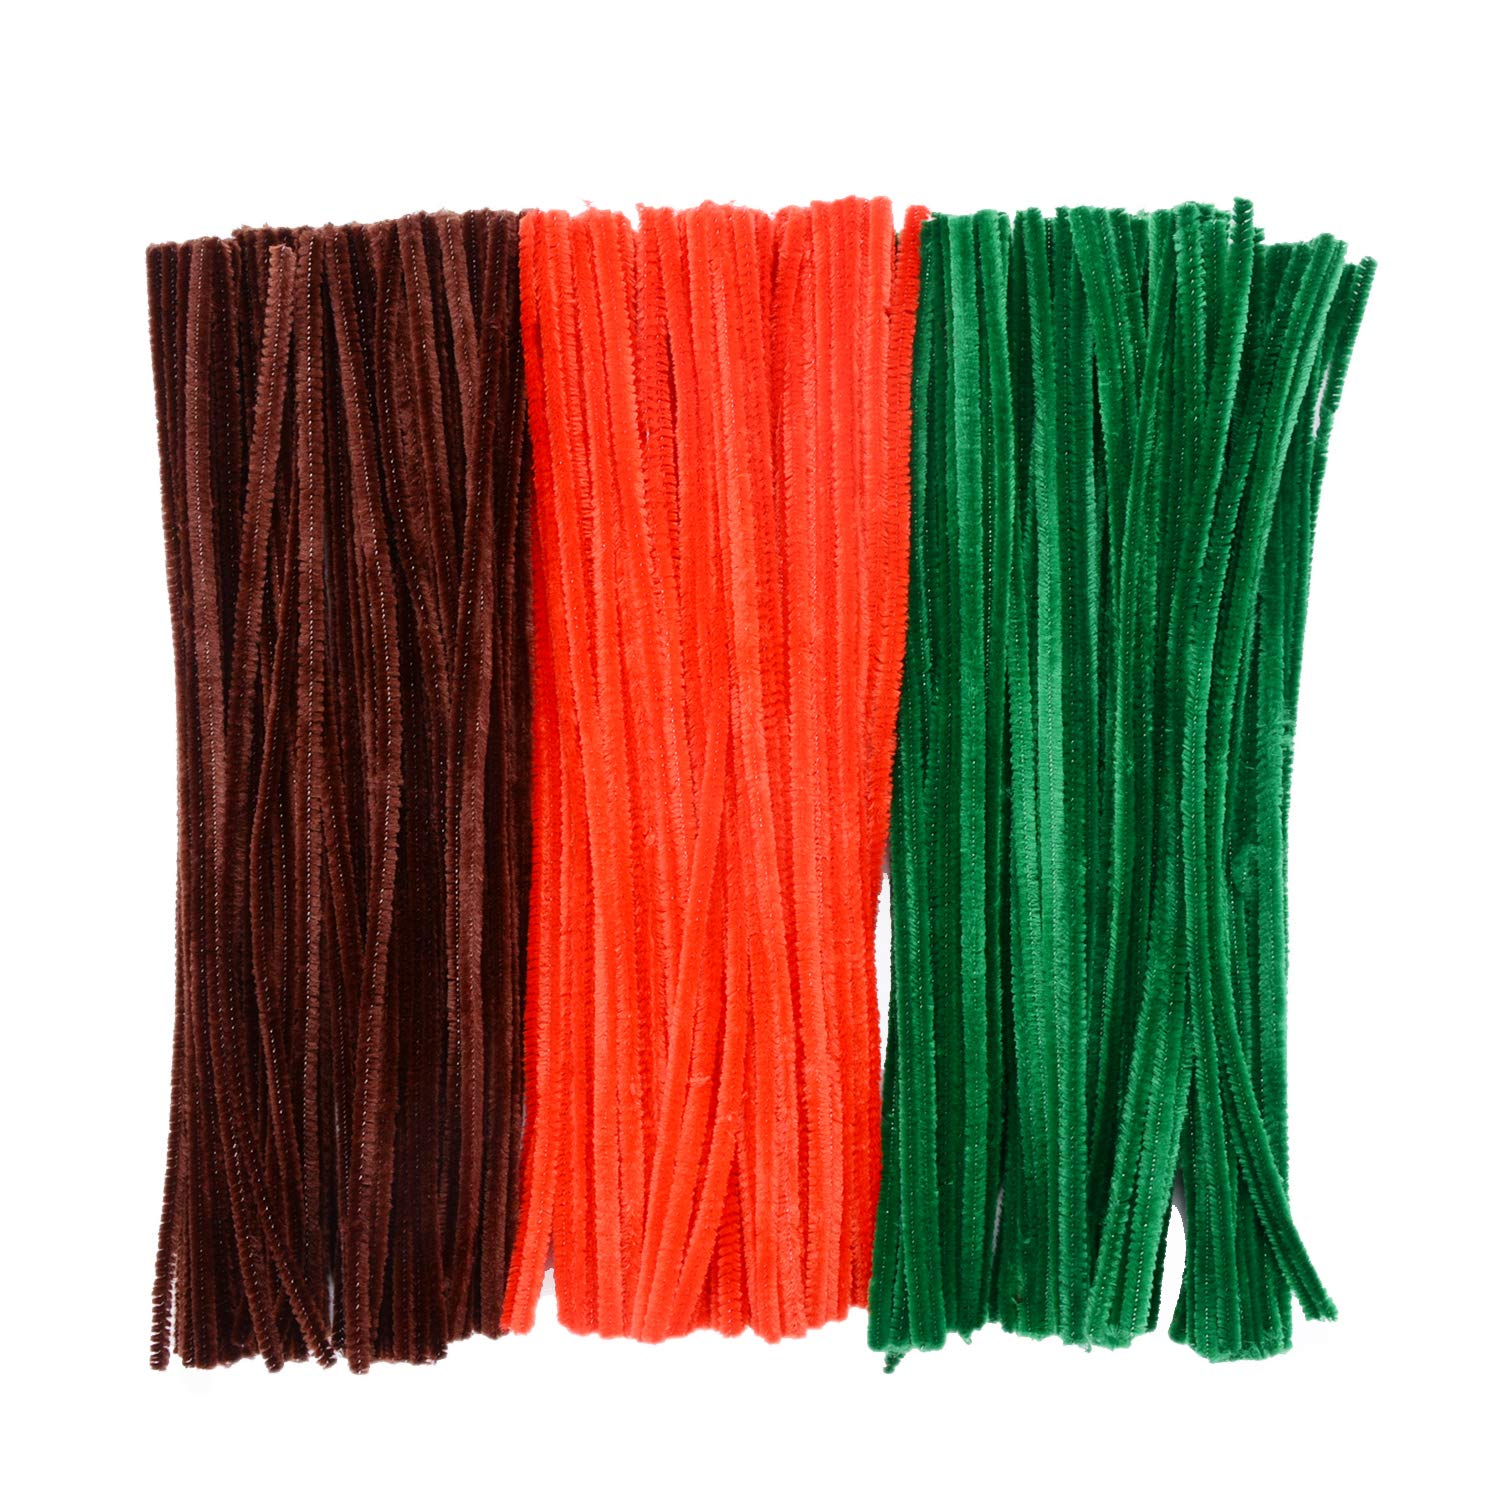 12 Inches by 6 mm eborde 300 Pieces Christmas Pipe Cleaners Chenille Stems for Arts and Crafts Supplies Brown, Red and Blue